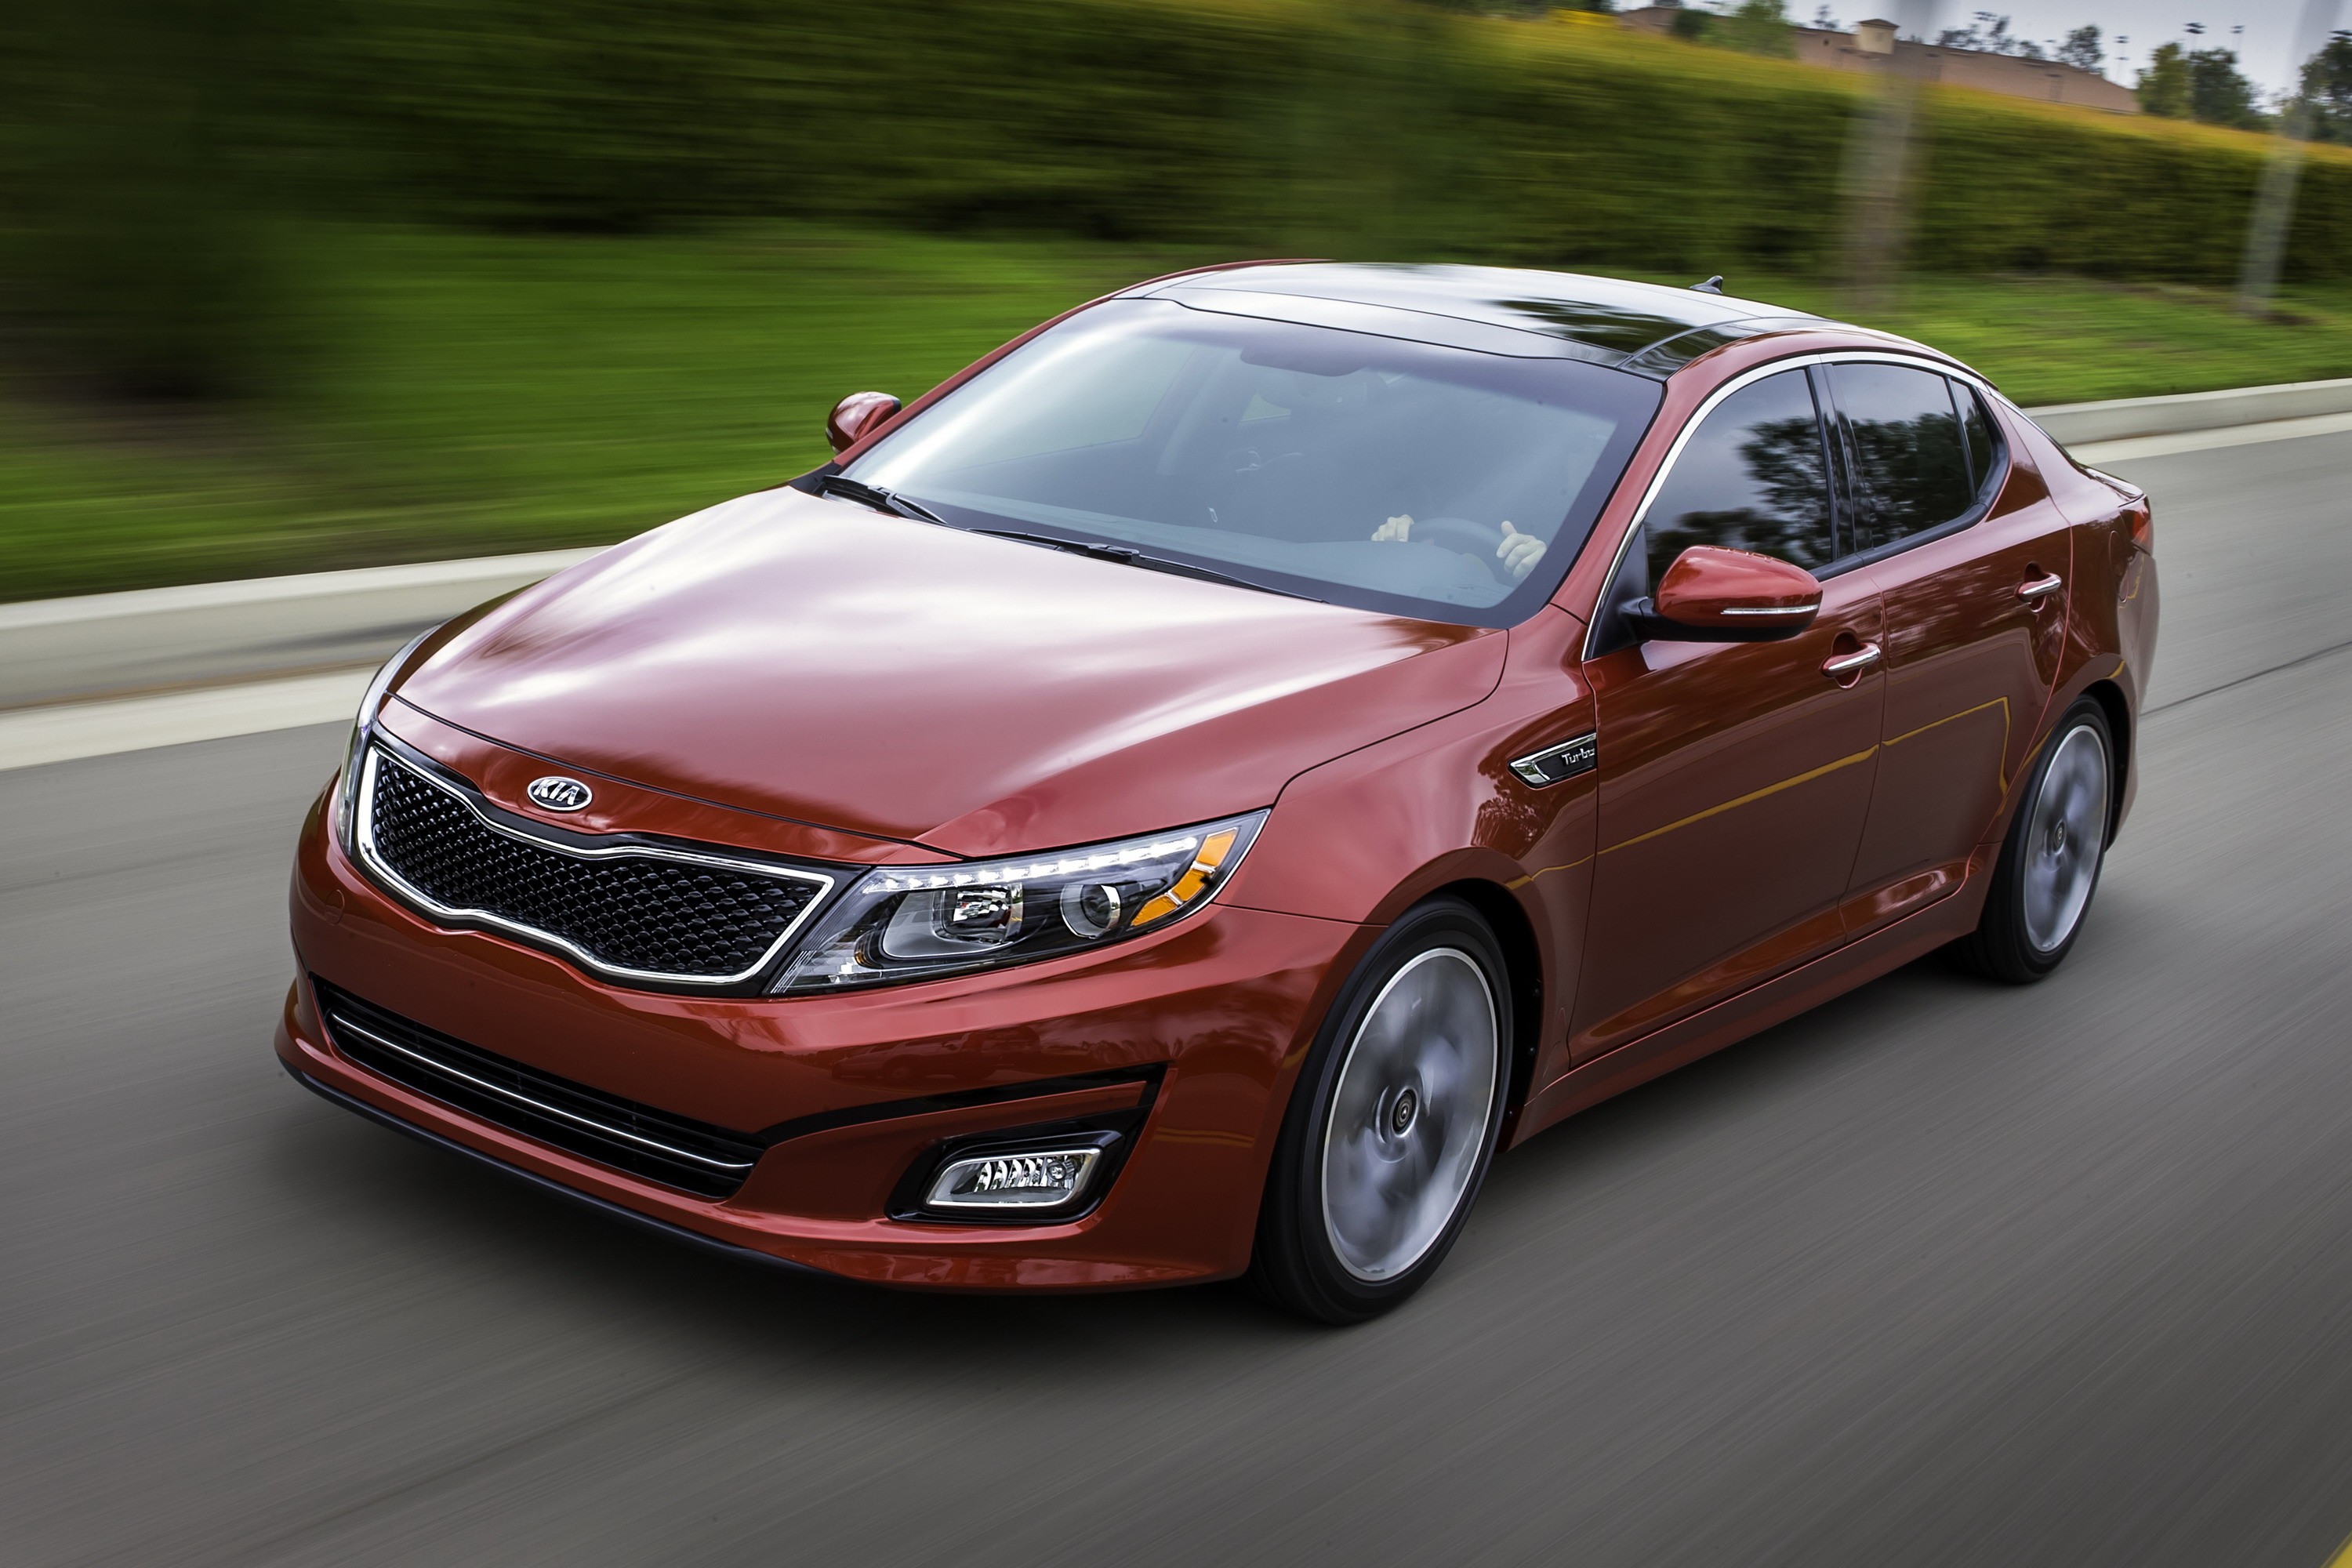 premiere next previewed world york new optima photos cars apple caradvice big generation kia debut ahead of for